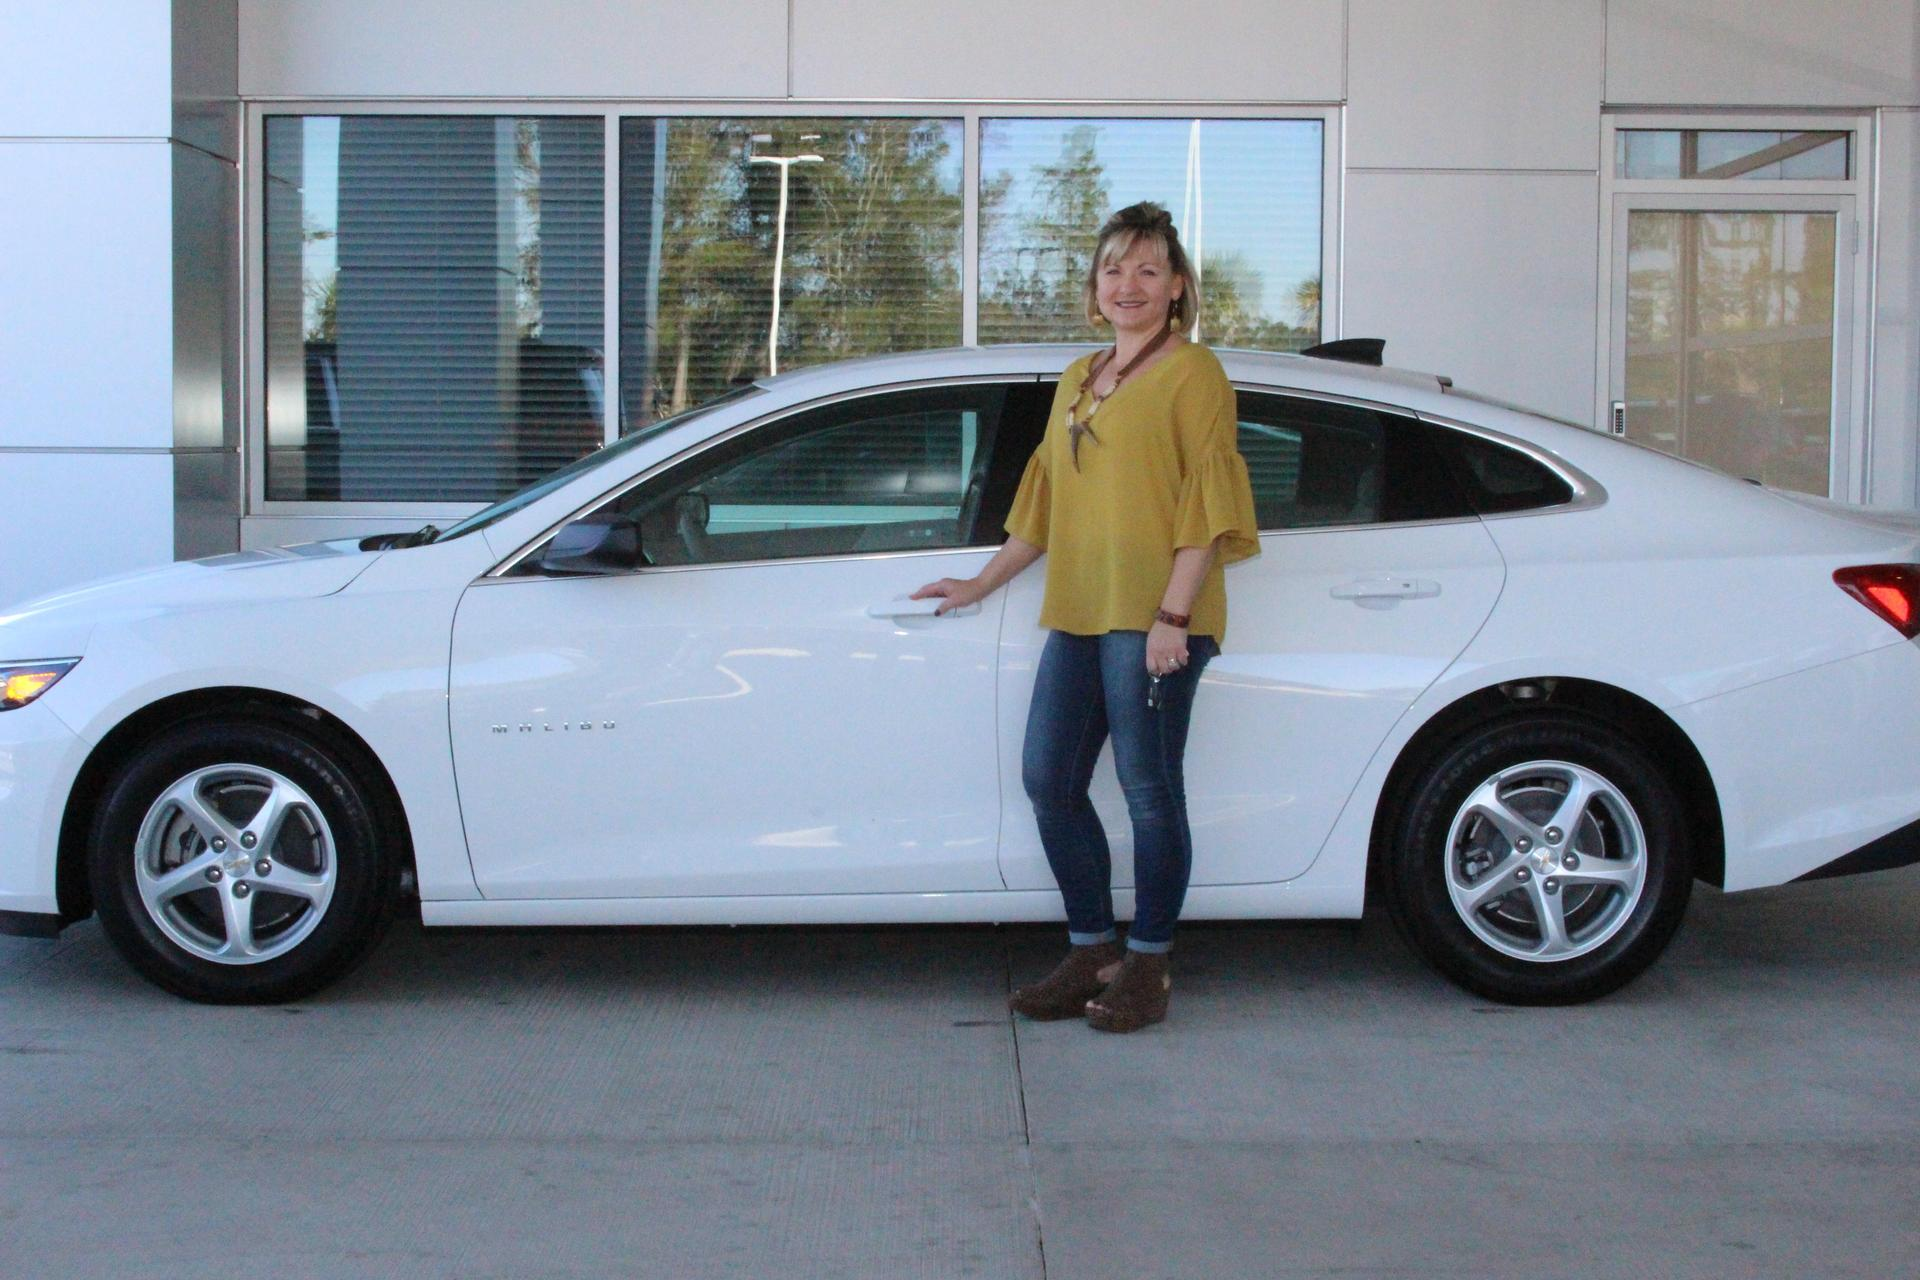 Amy receives her car from Herlong Chevrolet